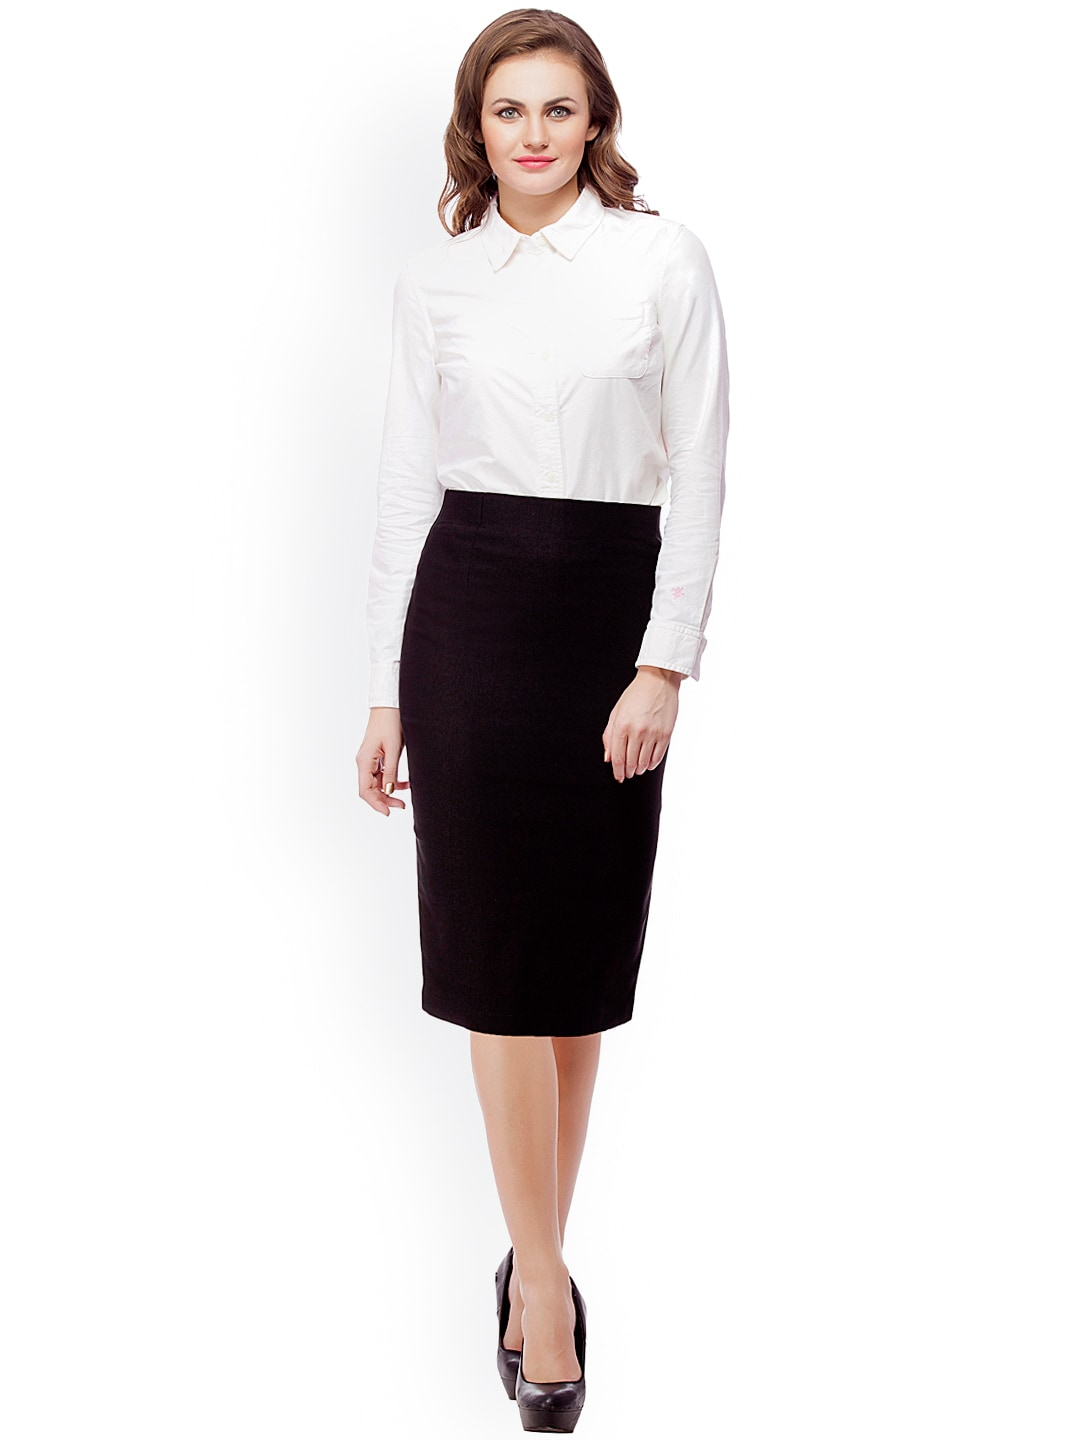 Pencil Skirt - Buy Pencil Skirt online in India